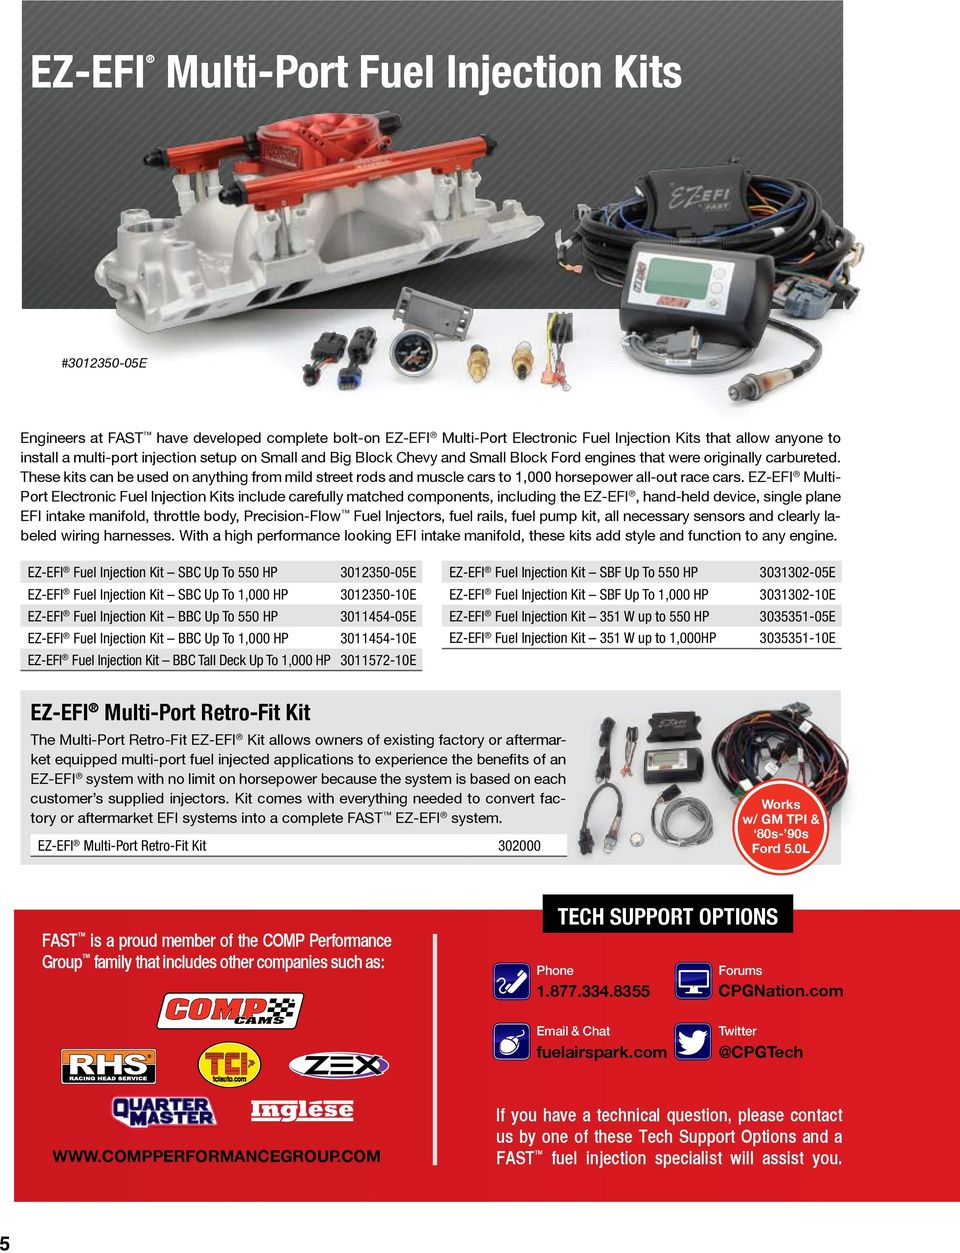 Efi Help Pdf Ez Tcu Controller Wiring Diagram Multi Port Electronic Fuel Injection Kits Include Carefully Matched Components Including The Hand